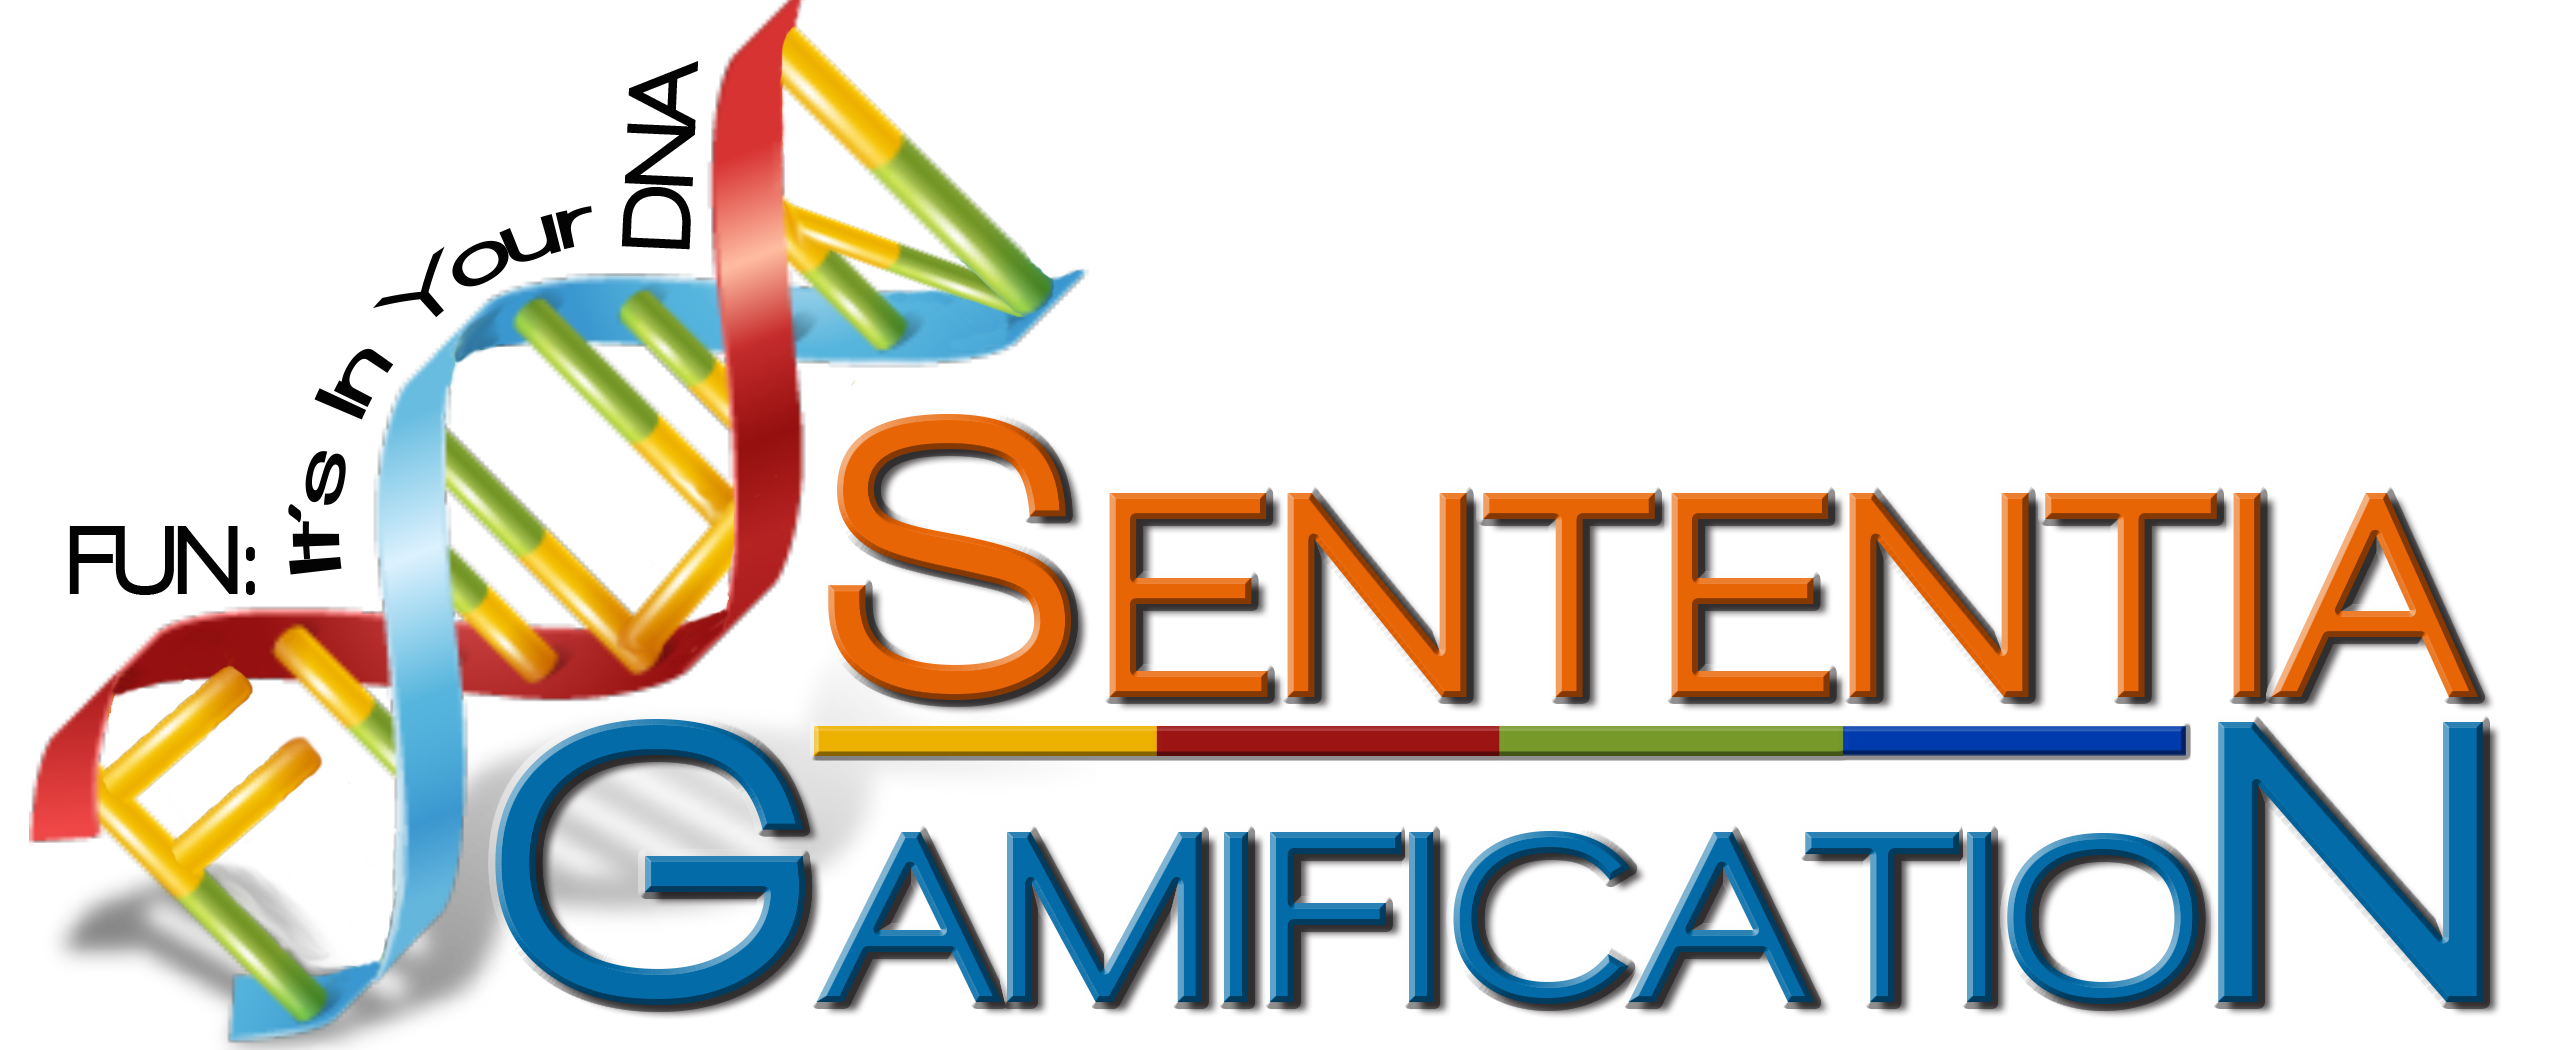 Sententia gamification fun is in your dna